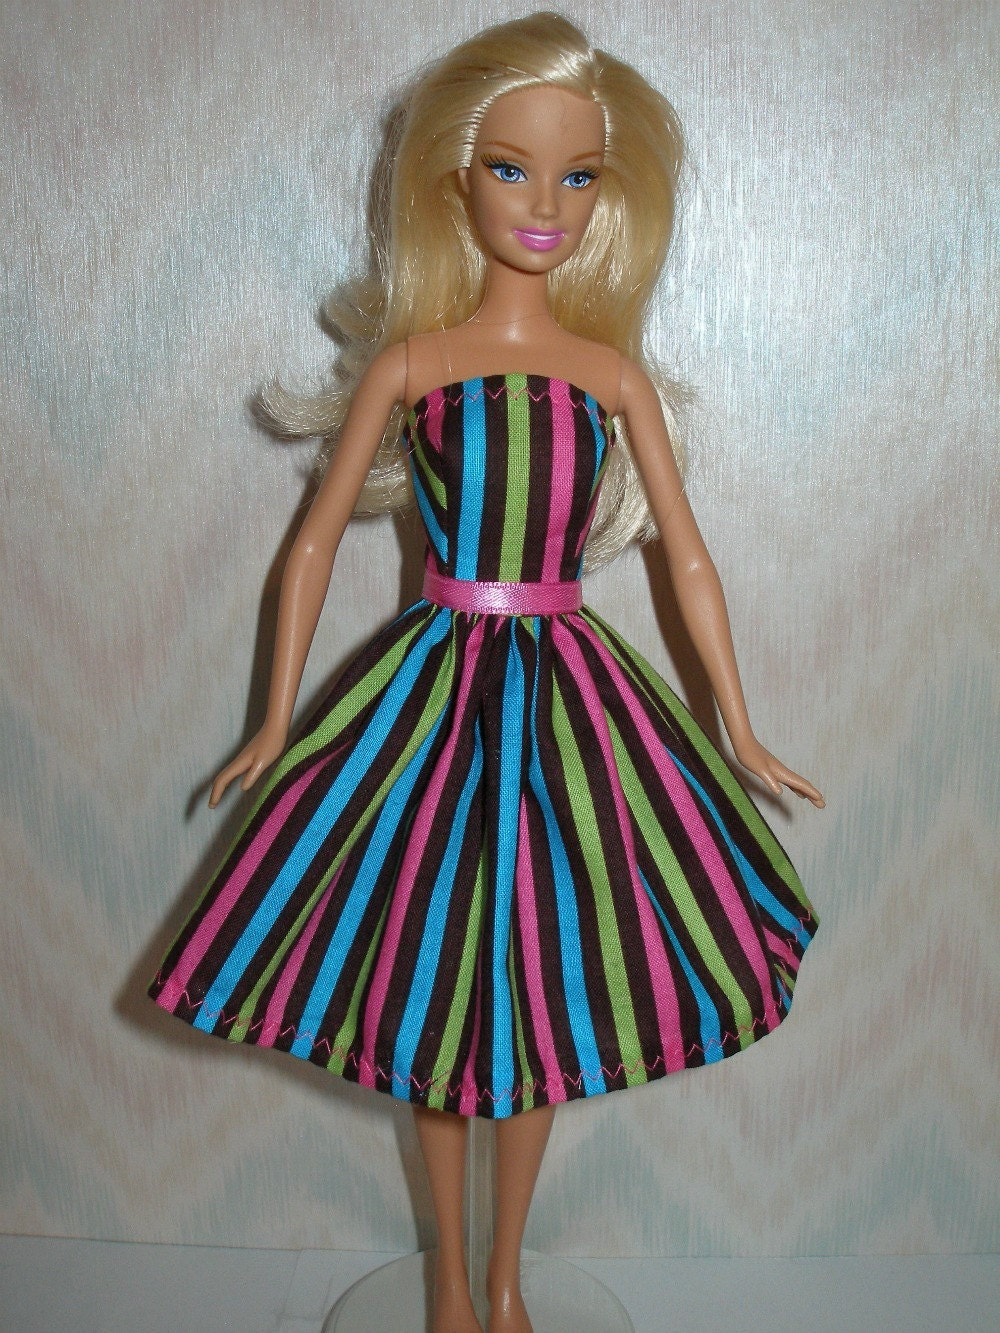 Handmade Barbie Doll Clothes Striped Dress By Thedesigningrose